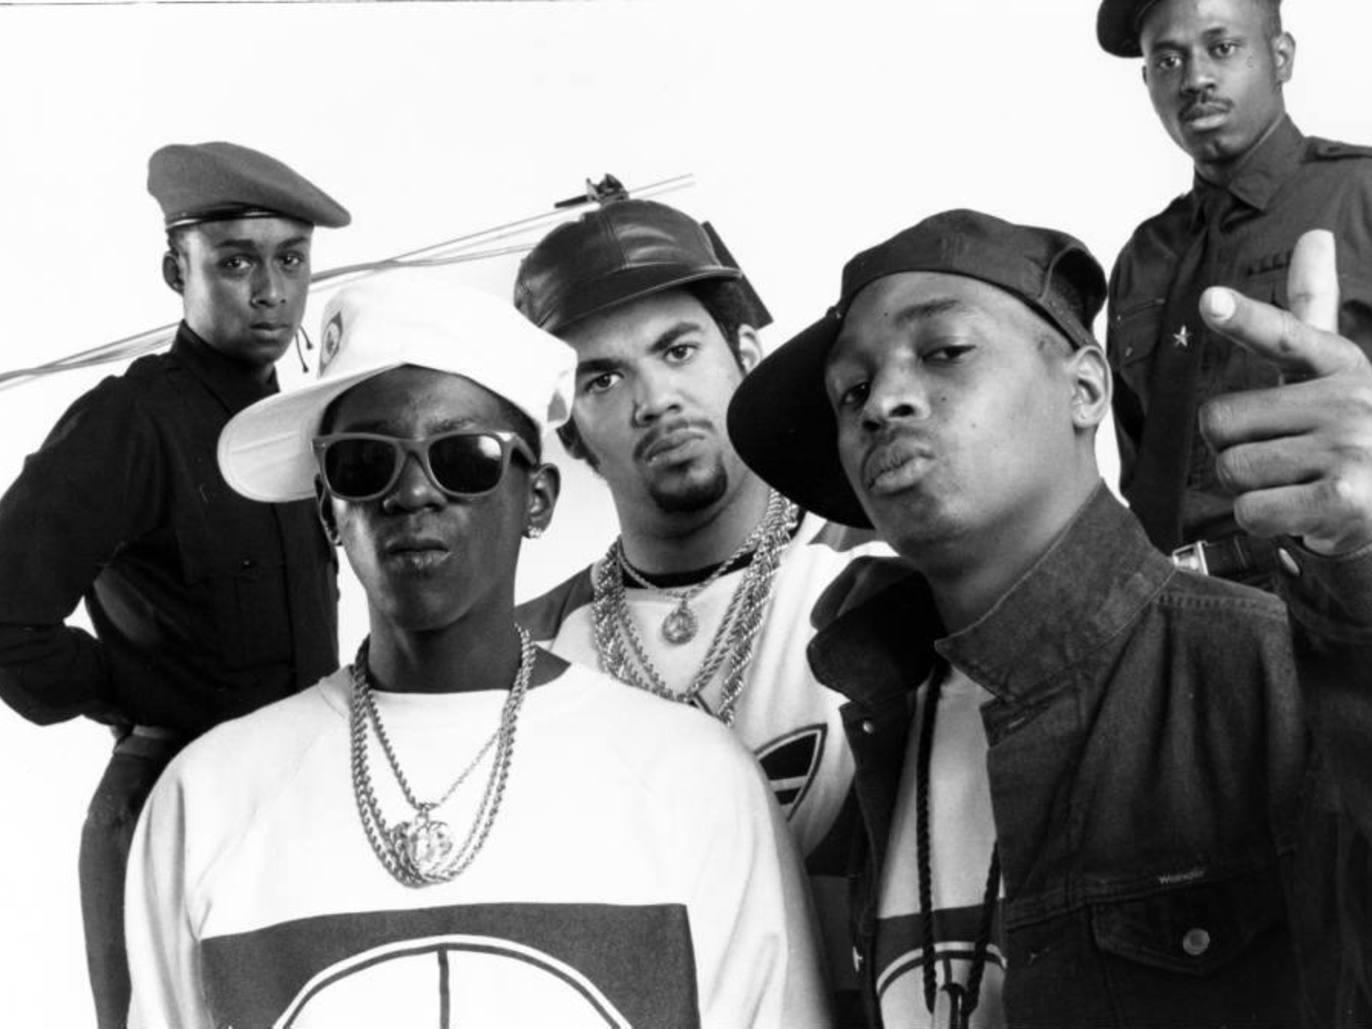 4. Public Enemy – 'Fight the Power' (1989)